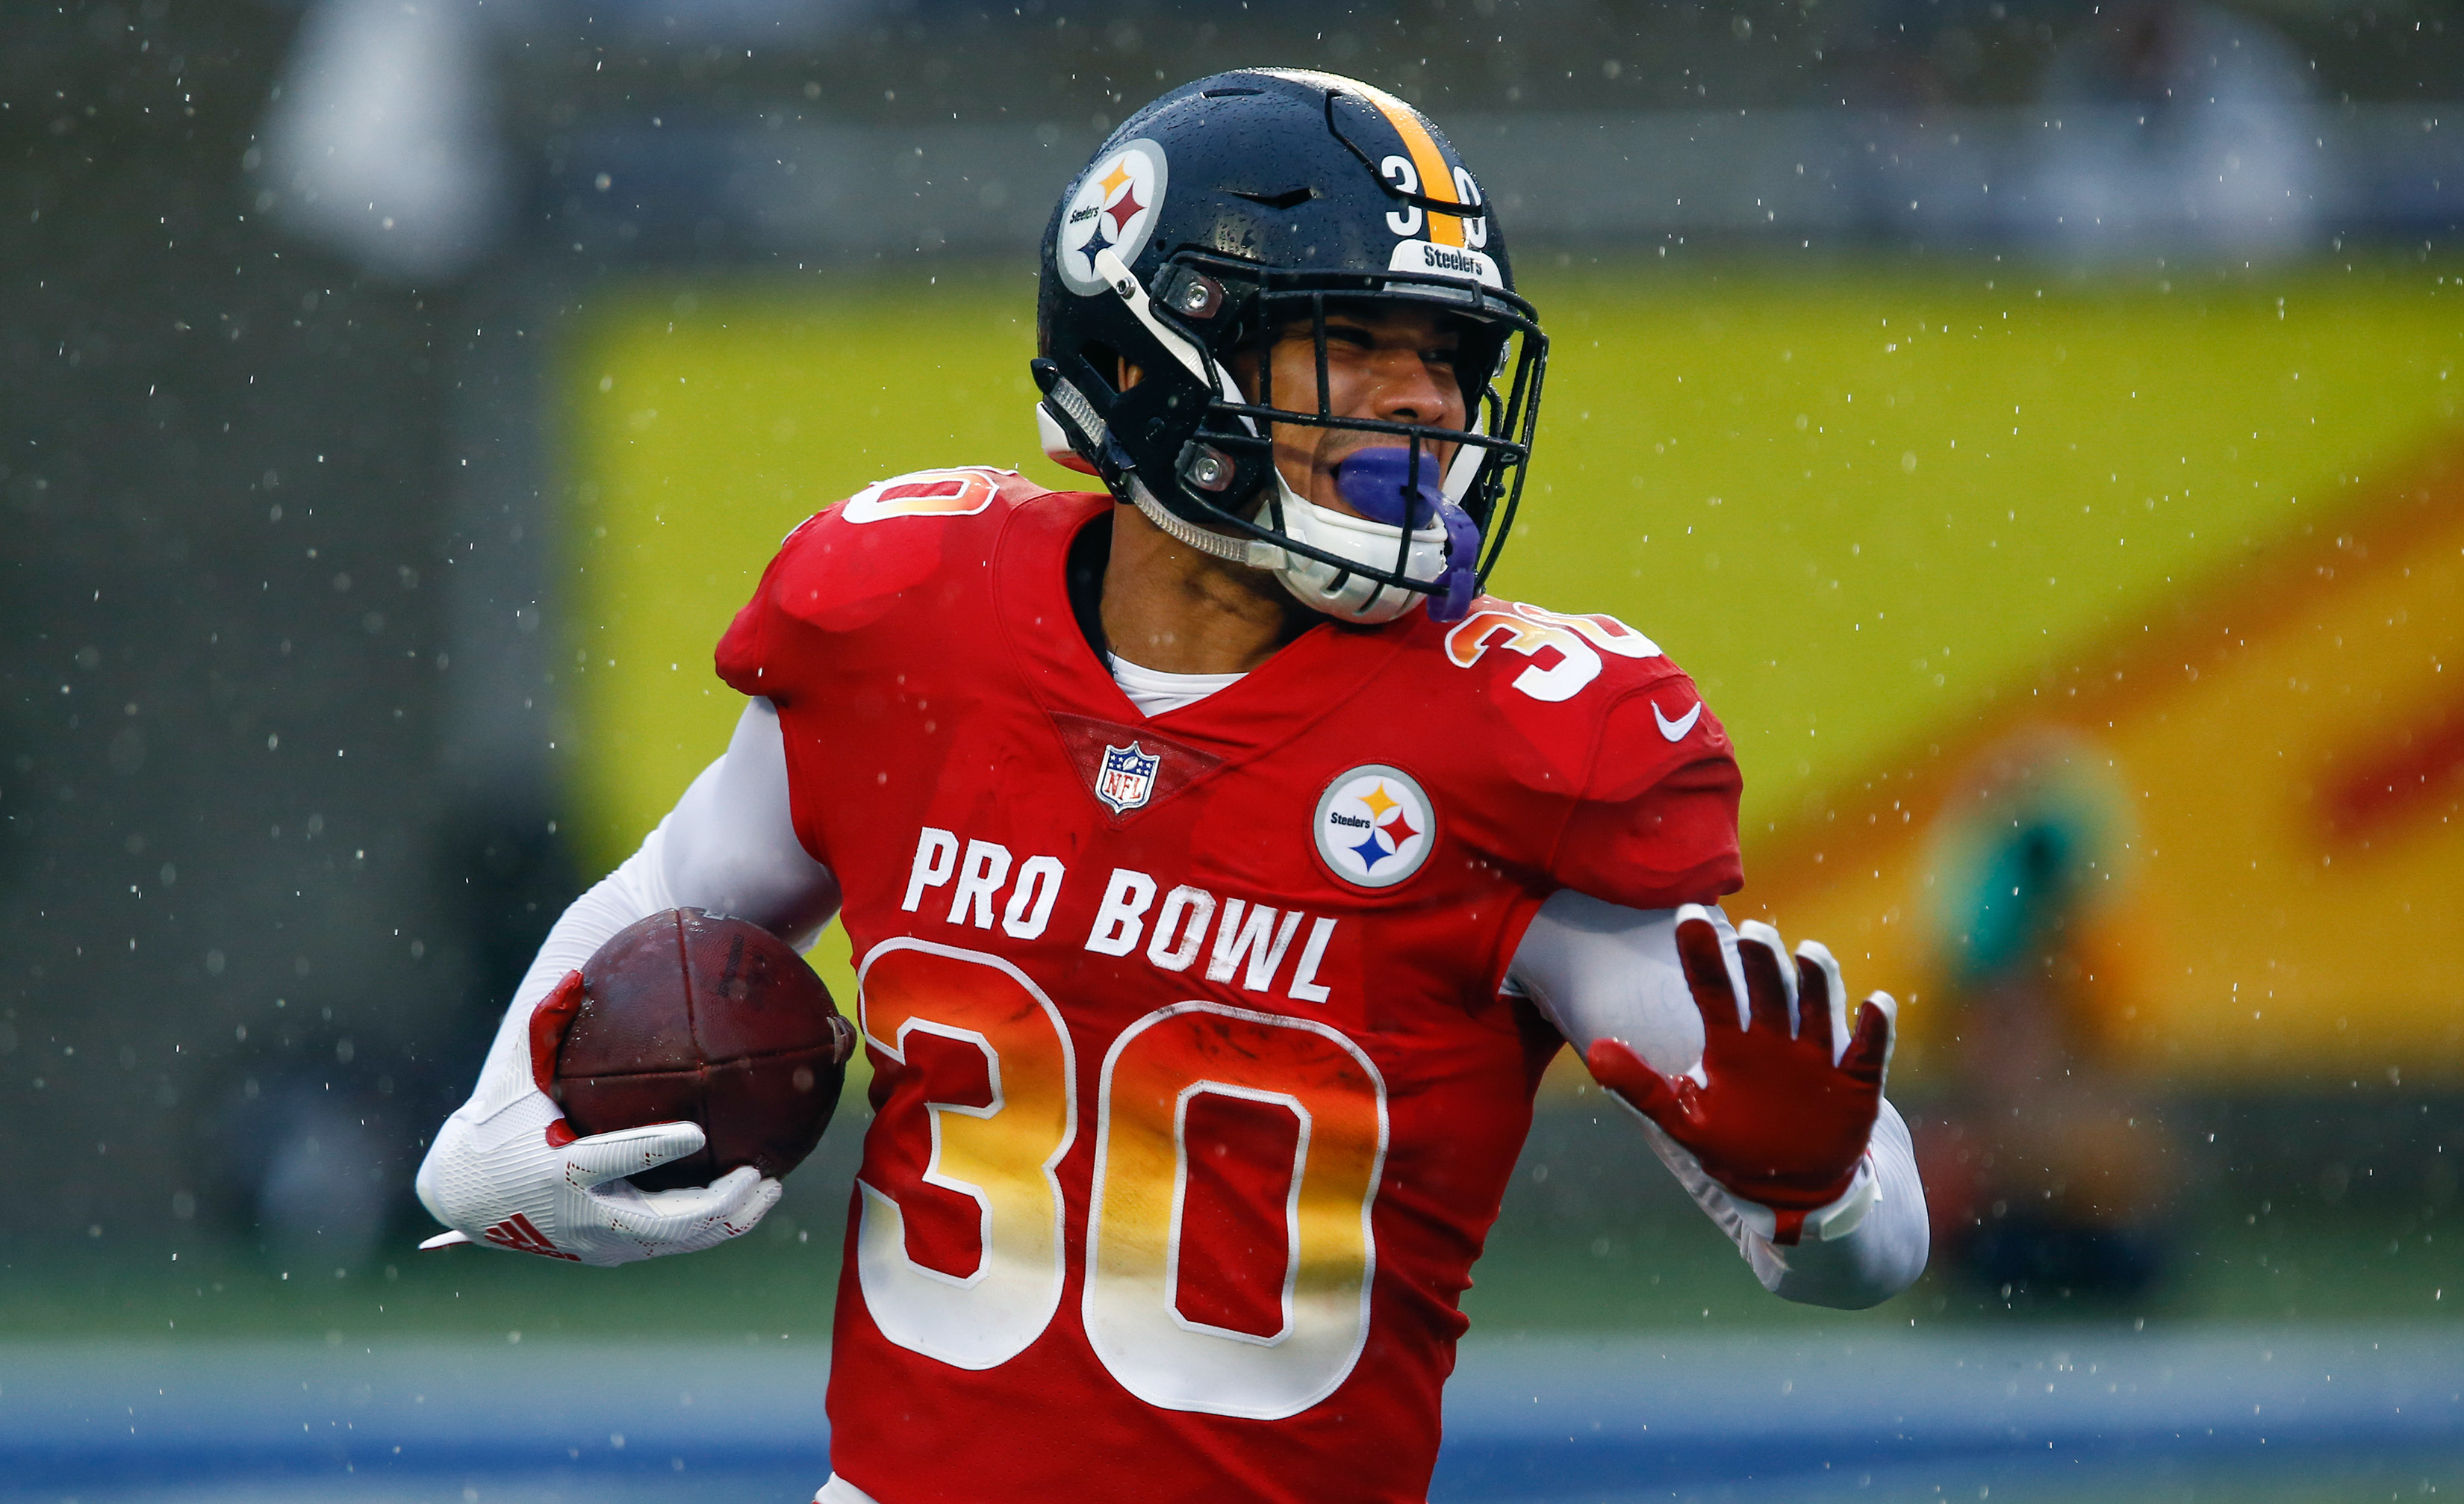 Le'Veon Bell has high praise for James Conner, predicts he'll break Steelers RB records